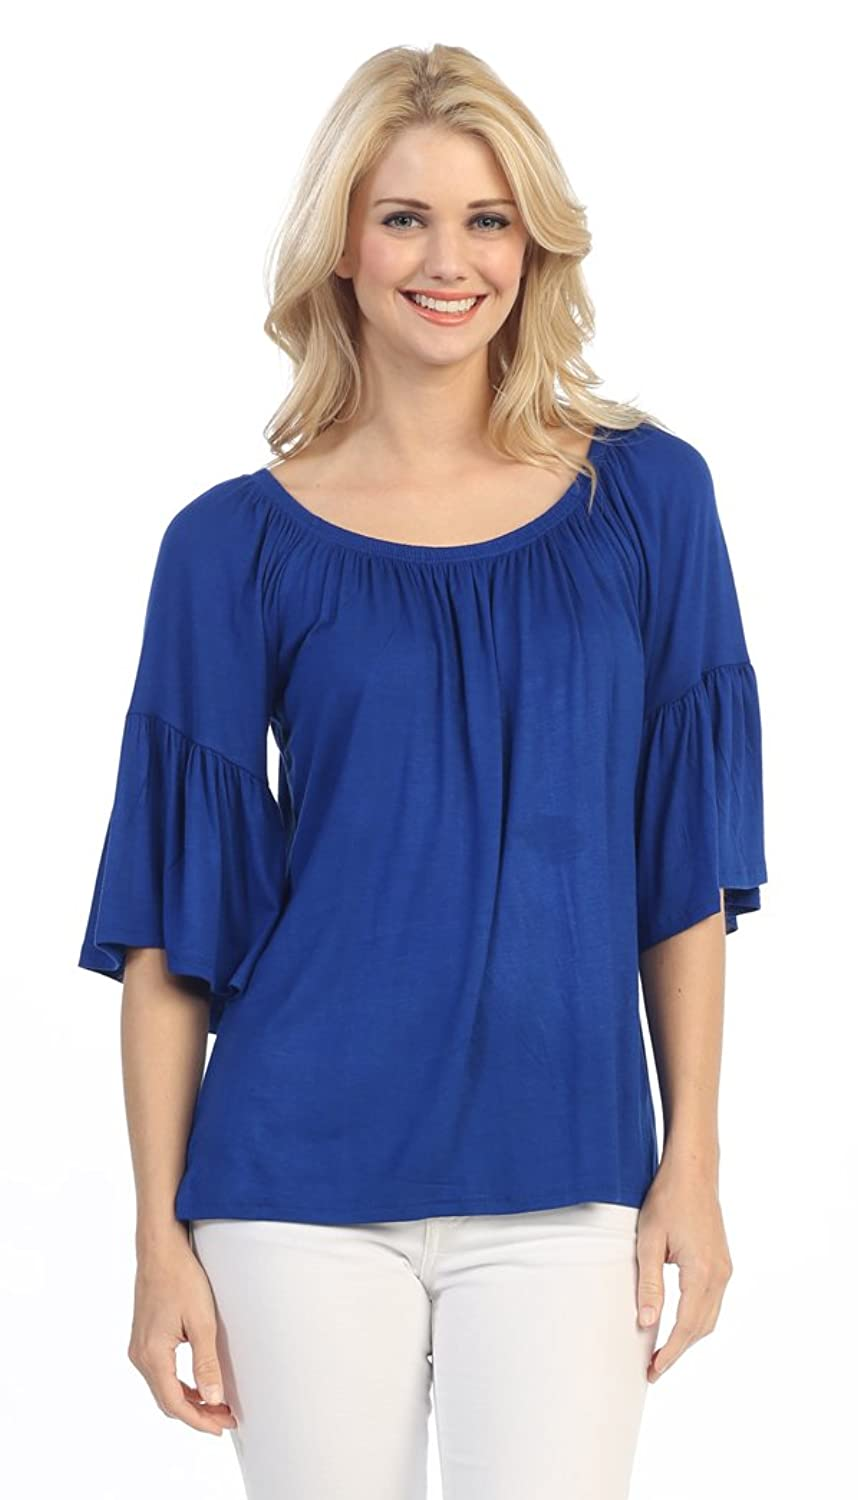 Women's Solid On or Off Shoulder Bell Sleeve Shirt Top Blouse (Small, Blue)  at Amazon Women's Clothing store: